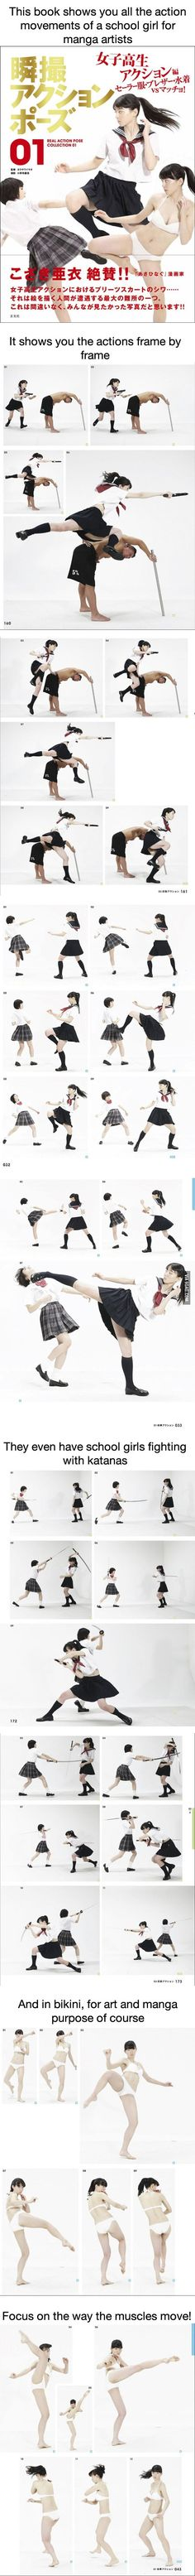 There's a reference book to teach you how to draw fighting school girls